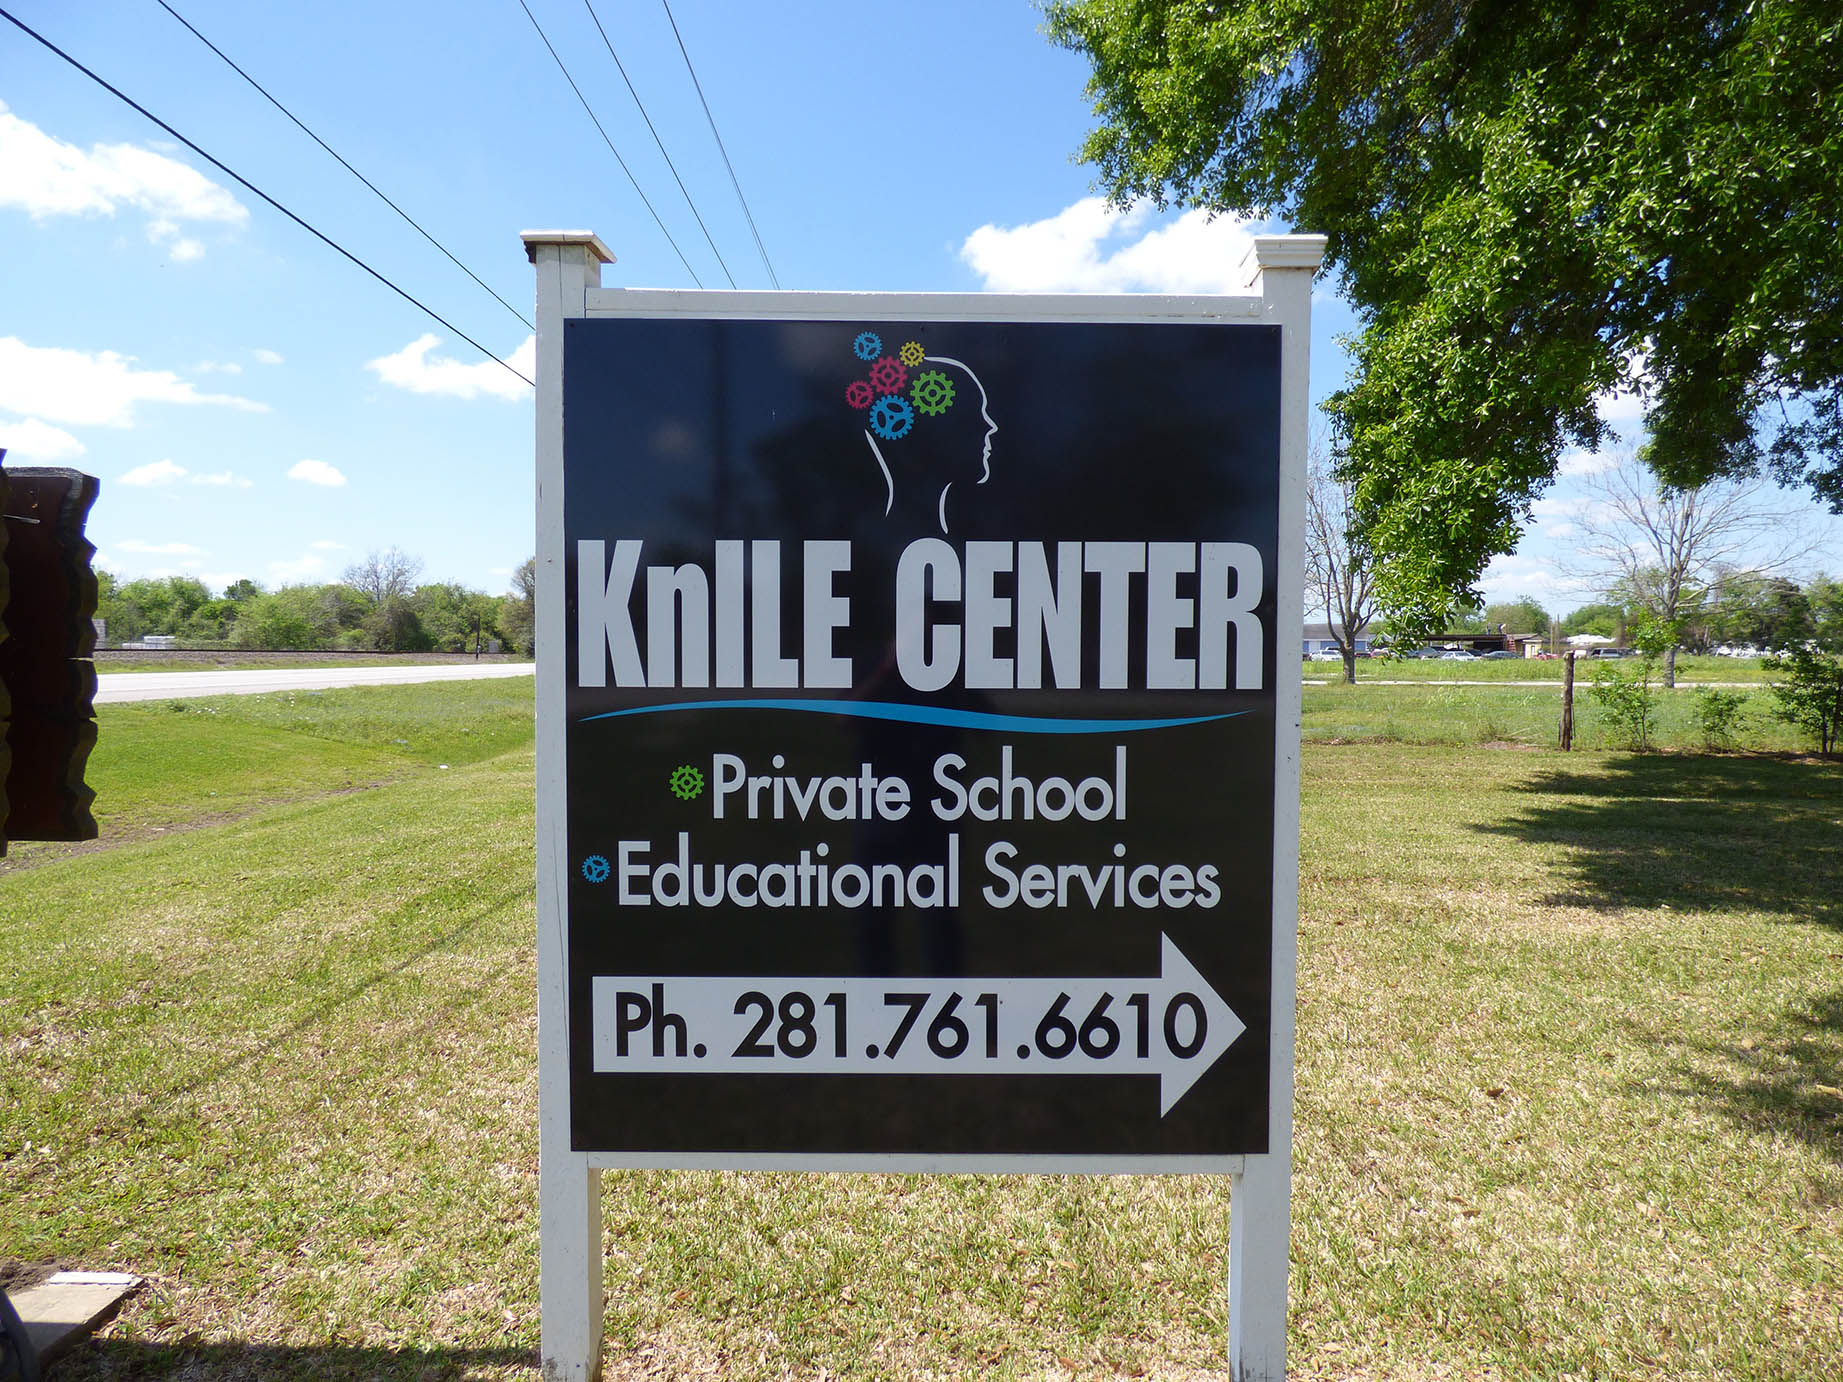 KnILE Center Sign